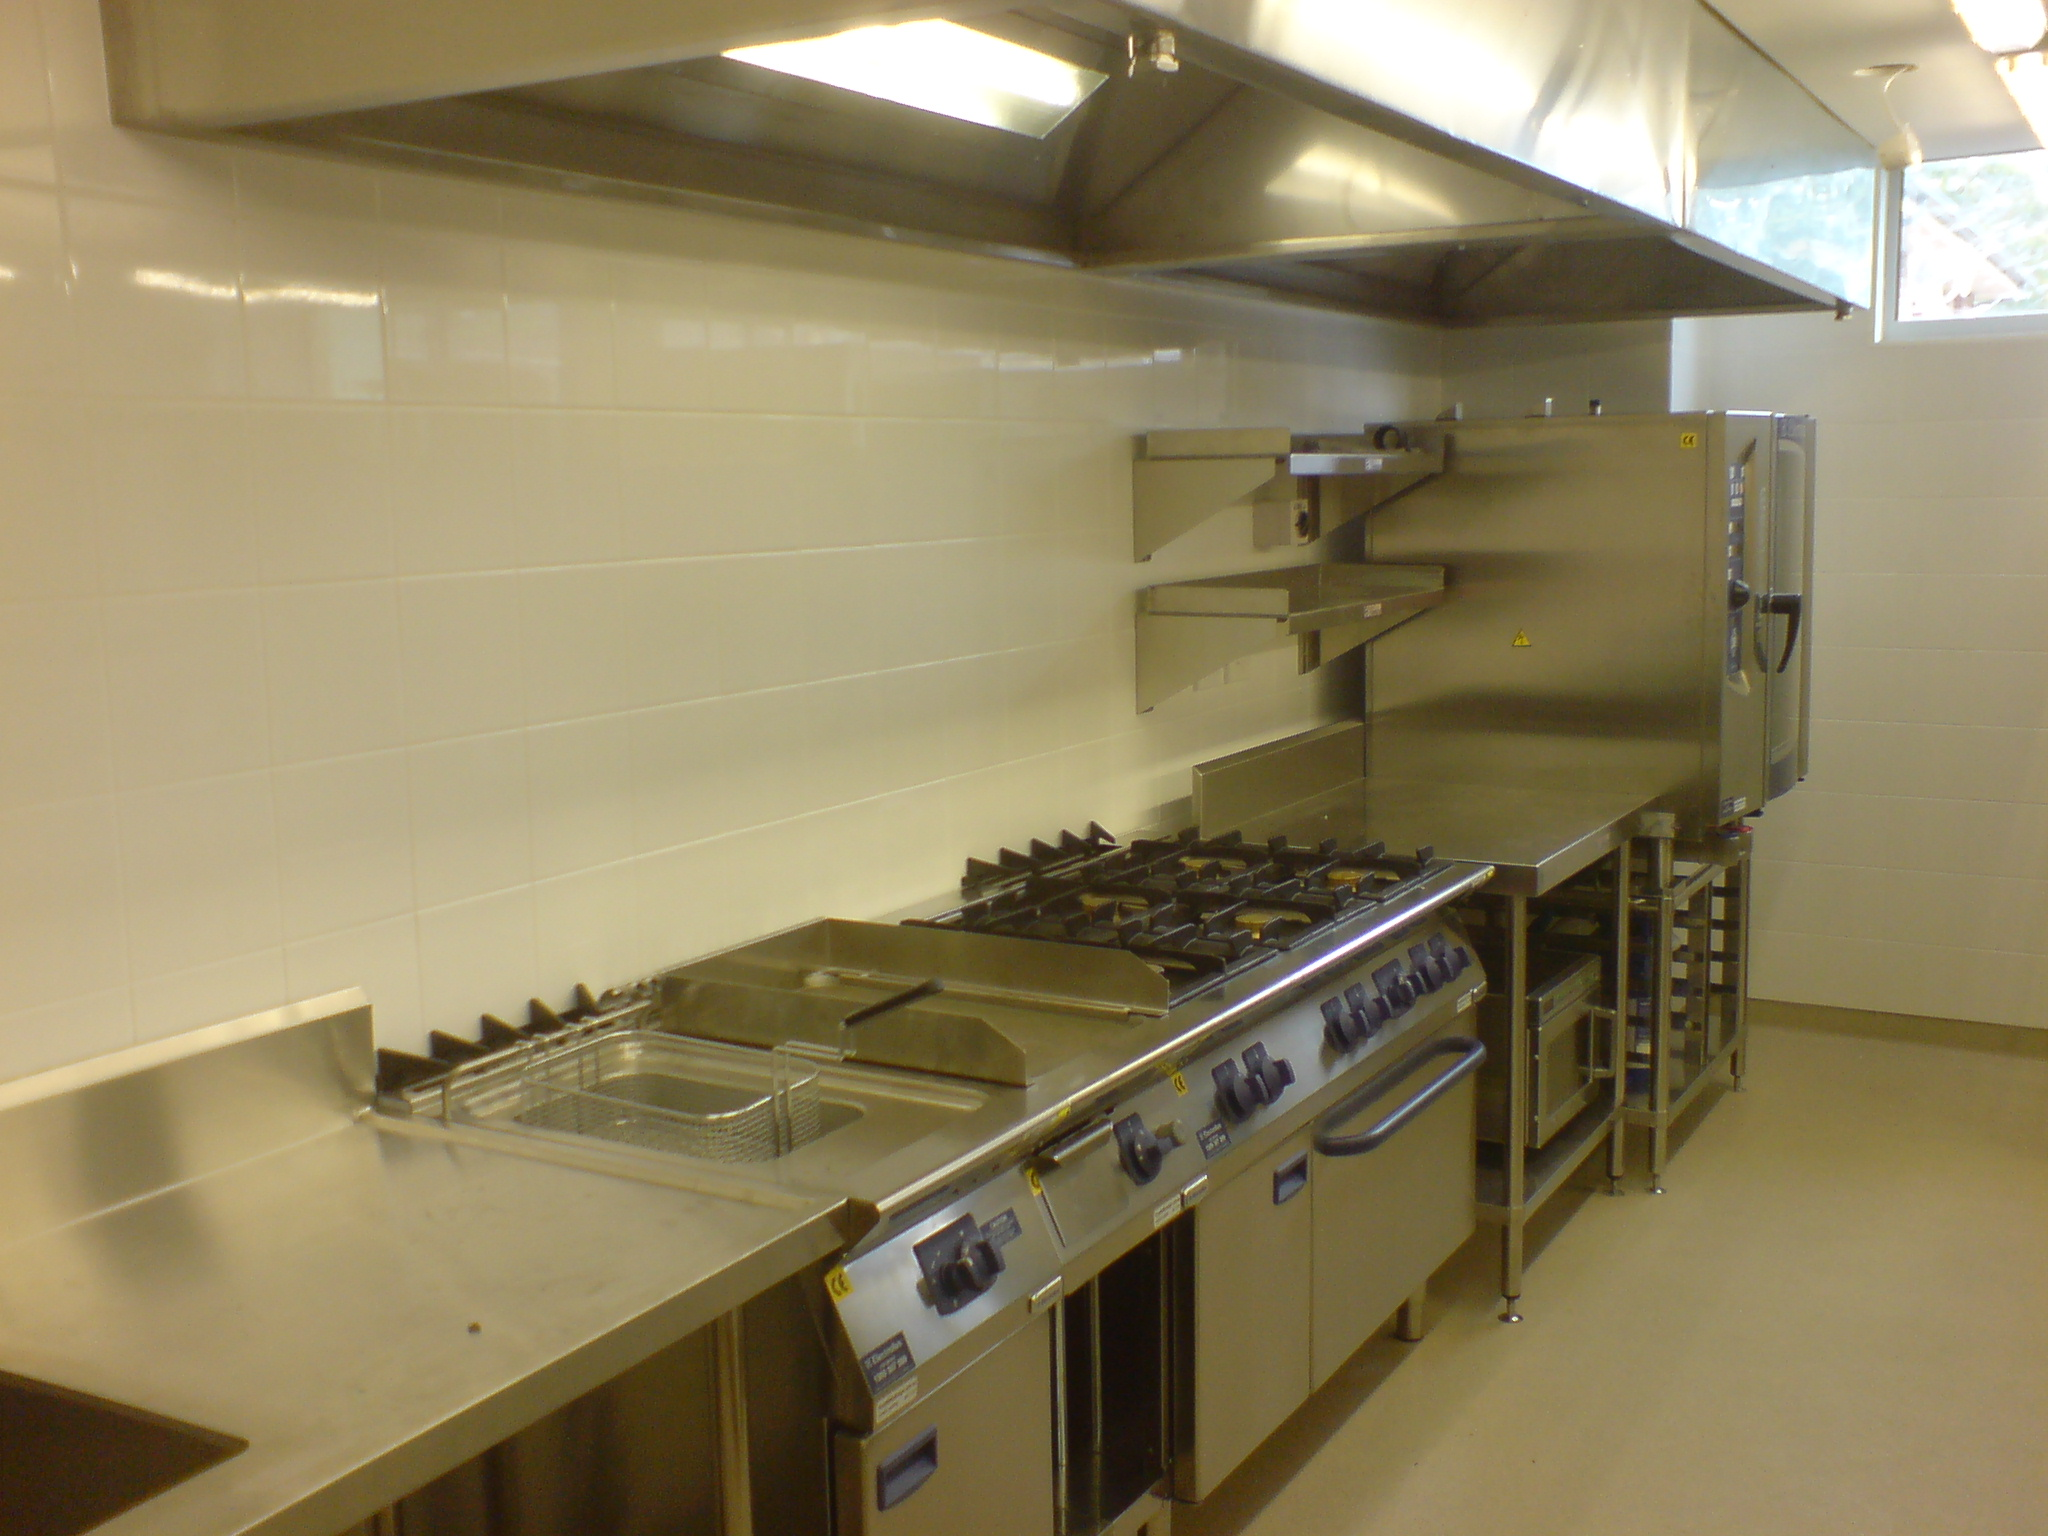 Hospitality Design Melbourne Commercial Kitchens Hospitality Design Melbourne Commercial